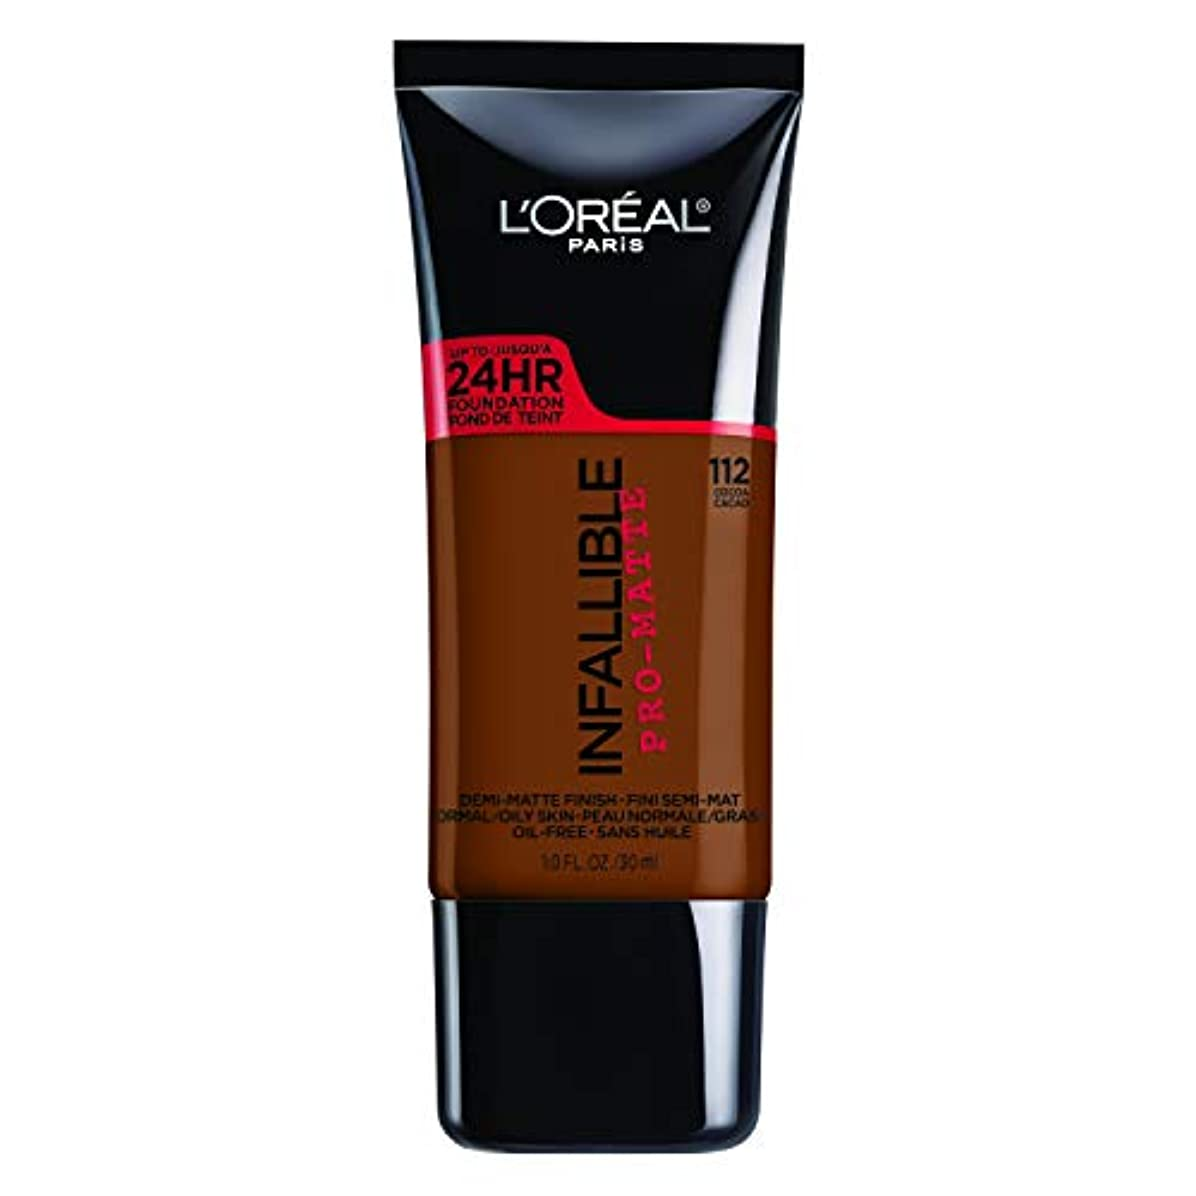 完璧な魔術師断線L'Oreal Paris Infallible Pro-Matte Foundation Makeup, 112 Cocoa, 1 fl. oz[並行輸入品]